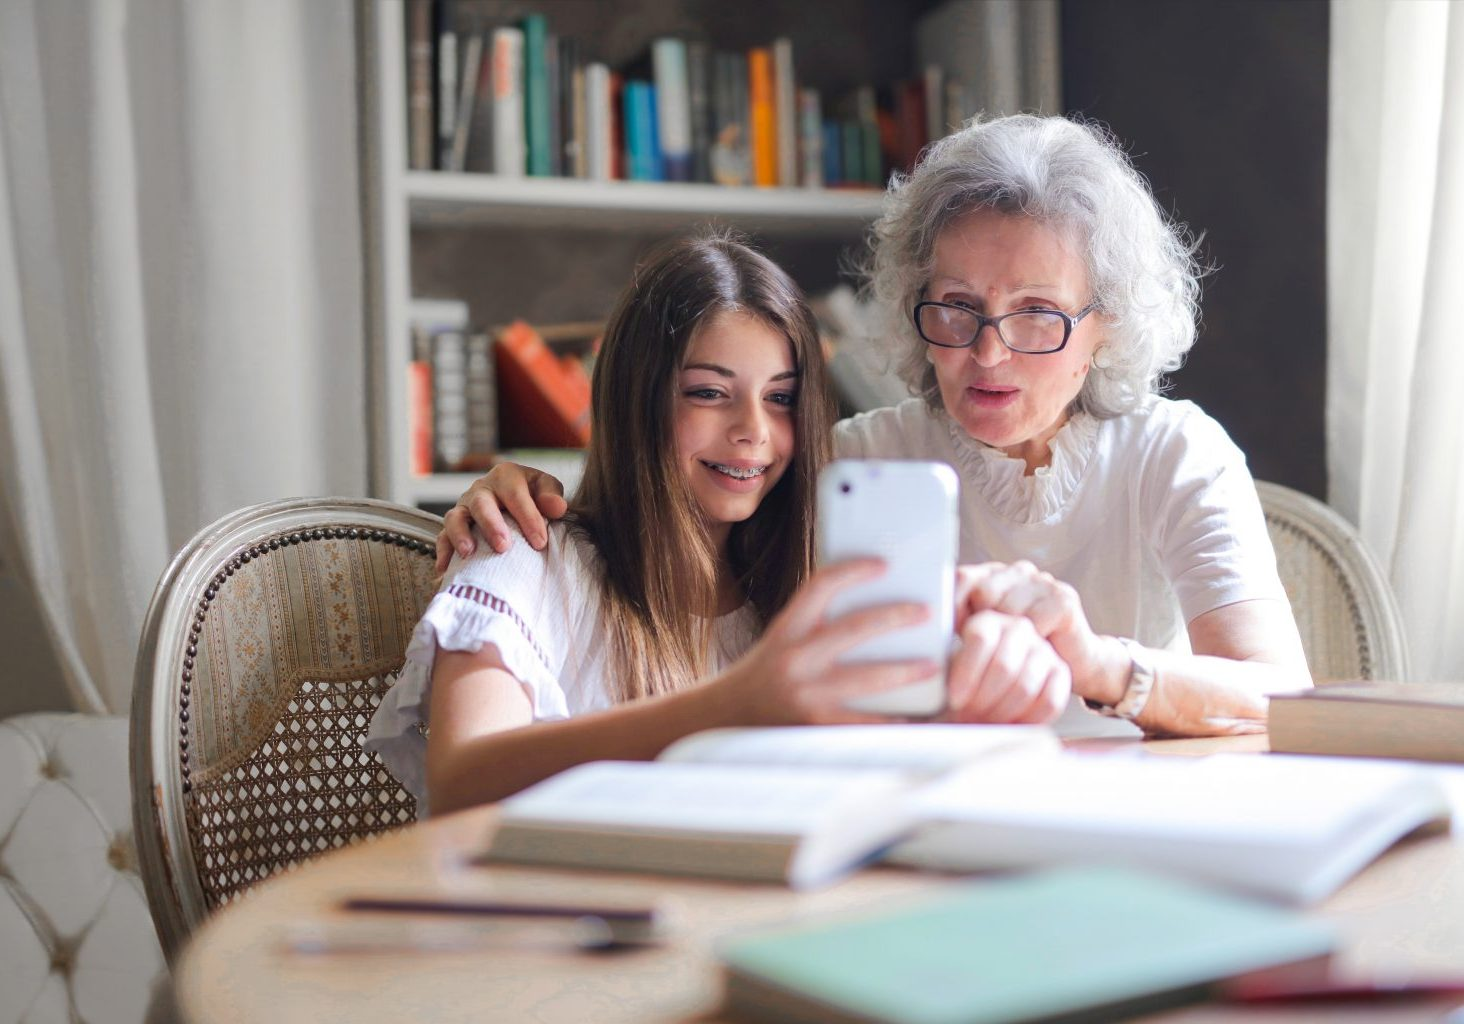 apps for retirees and seniors | over 50s guide to technology